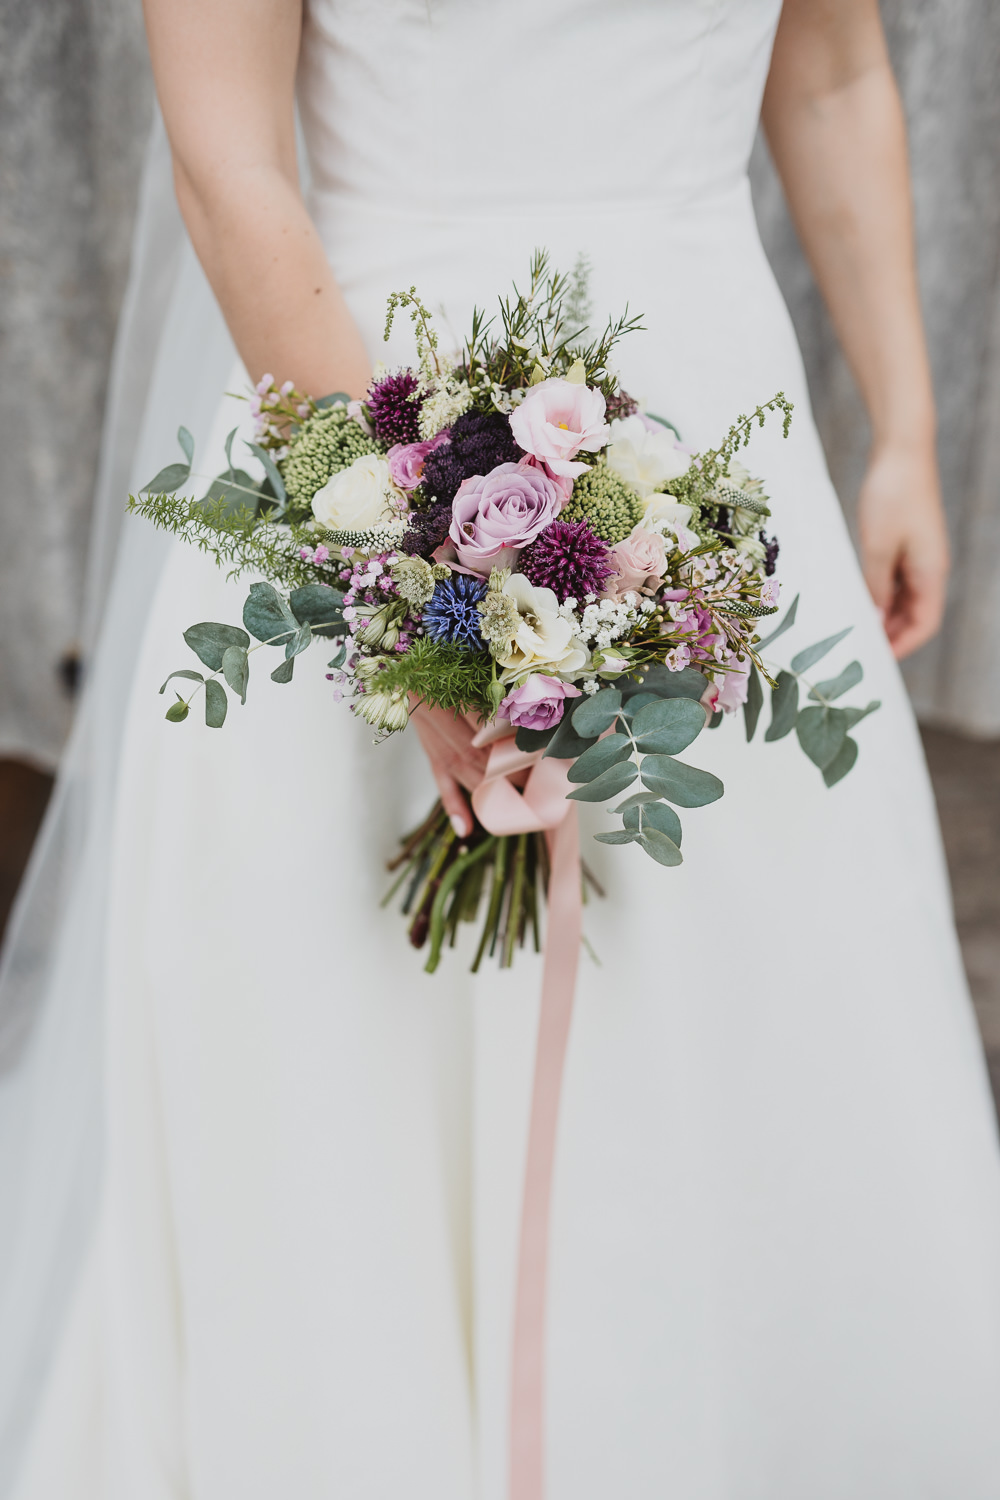 Bouquet Flowers Bride Bridal Eucalyptus Rose Wax Flower Lilac Pink Clear Marquee Wedding Sarah Brookes Photography